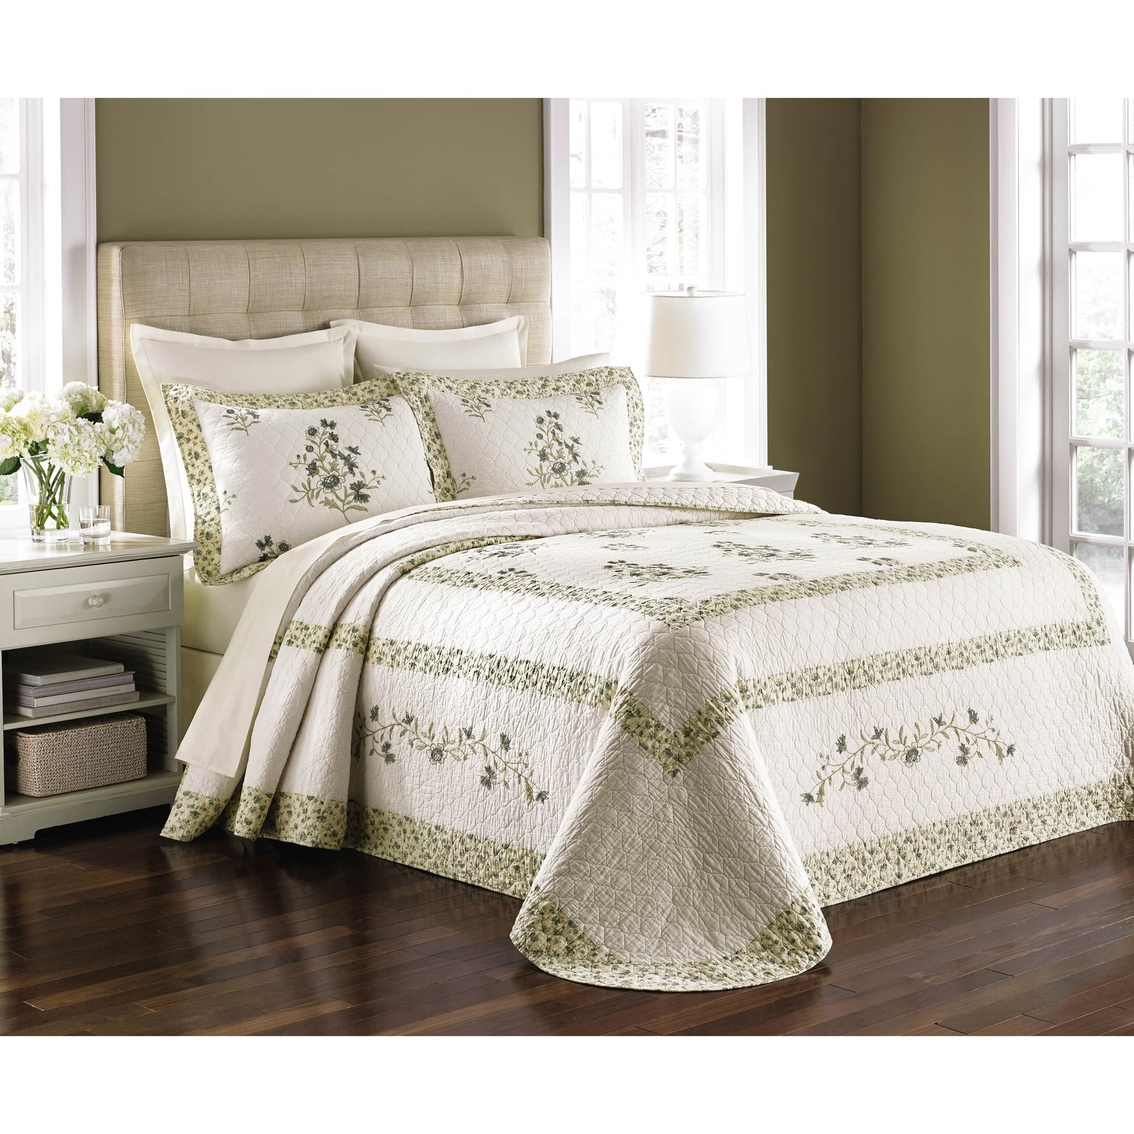 Martha Stewart Collection Abbey Garden Bedspread Bedspreads